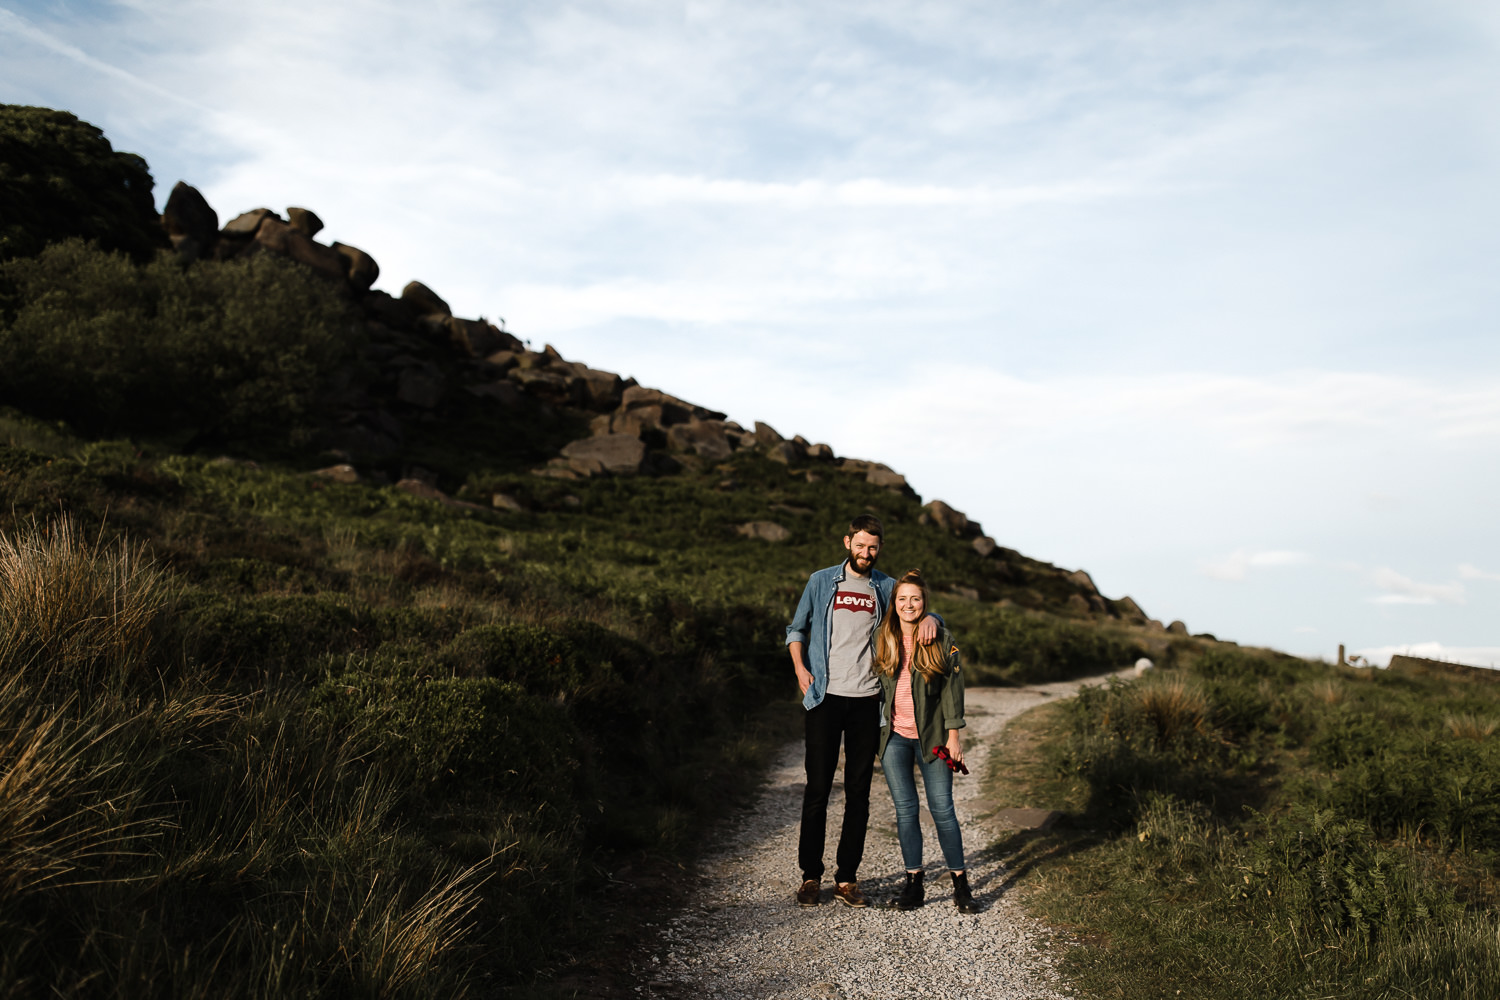 Peak_District_Engagement_Shoot_Prewed_Couple_Shoot_-17.jpg